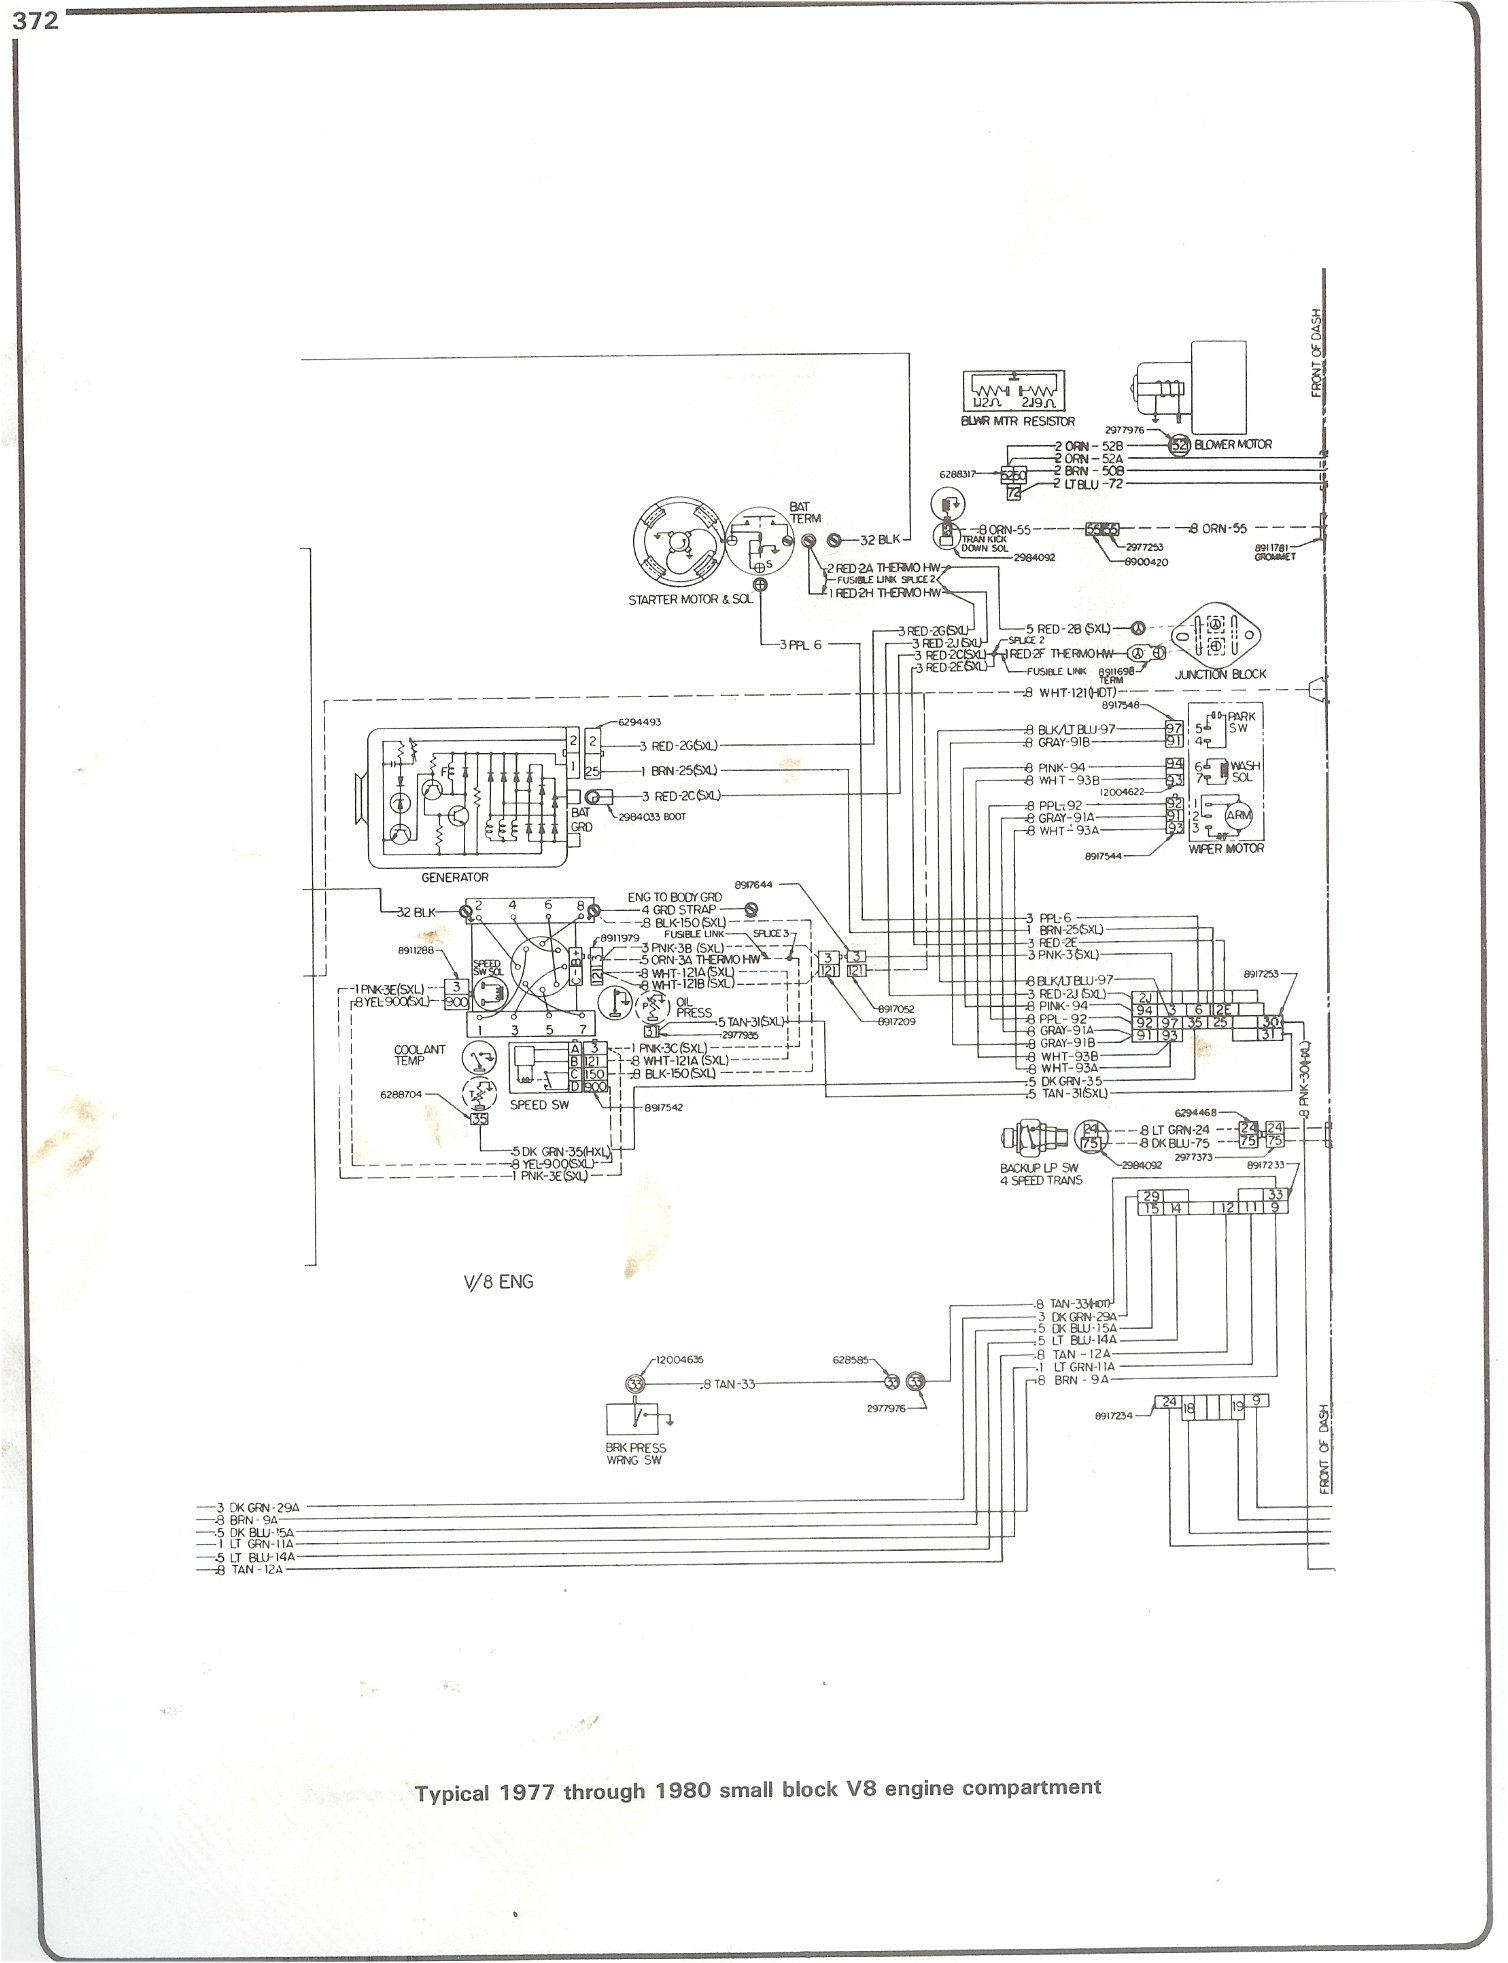 hight resolution of 77 chevy truck wiring harness wiring diagrams 2005 chevy radio wiring harness 73 87 chevy wiring harness